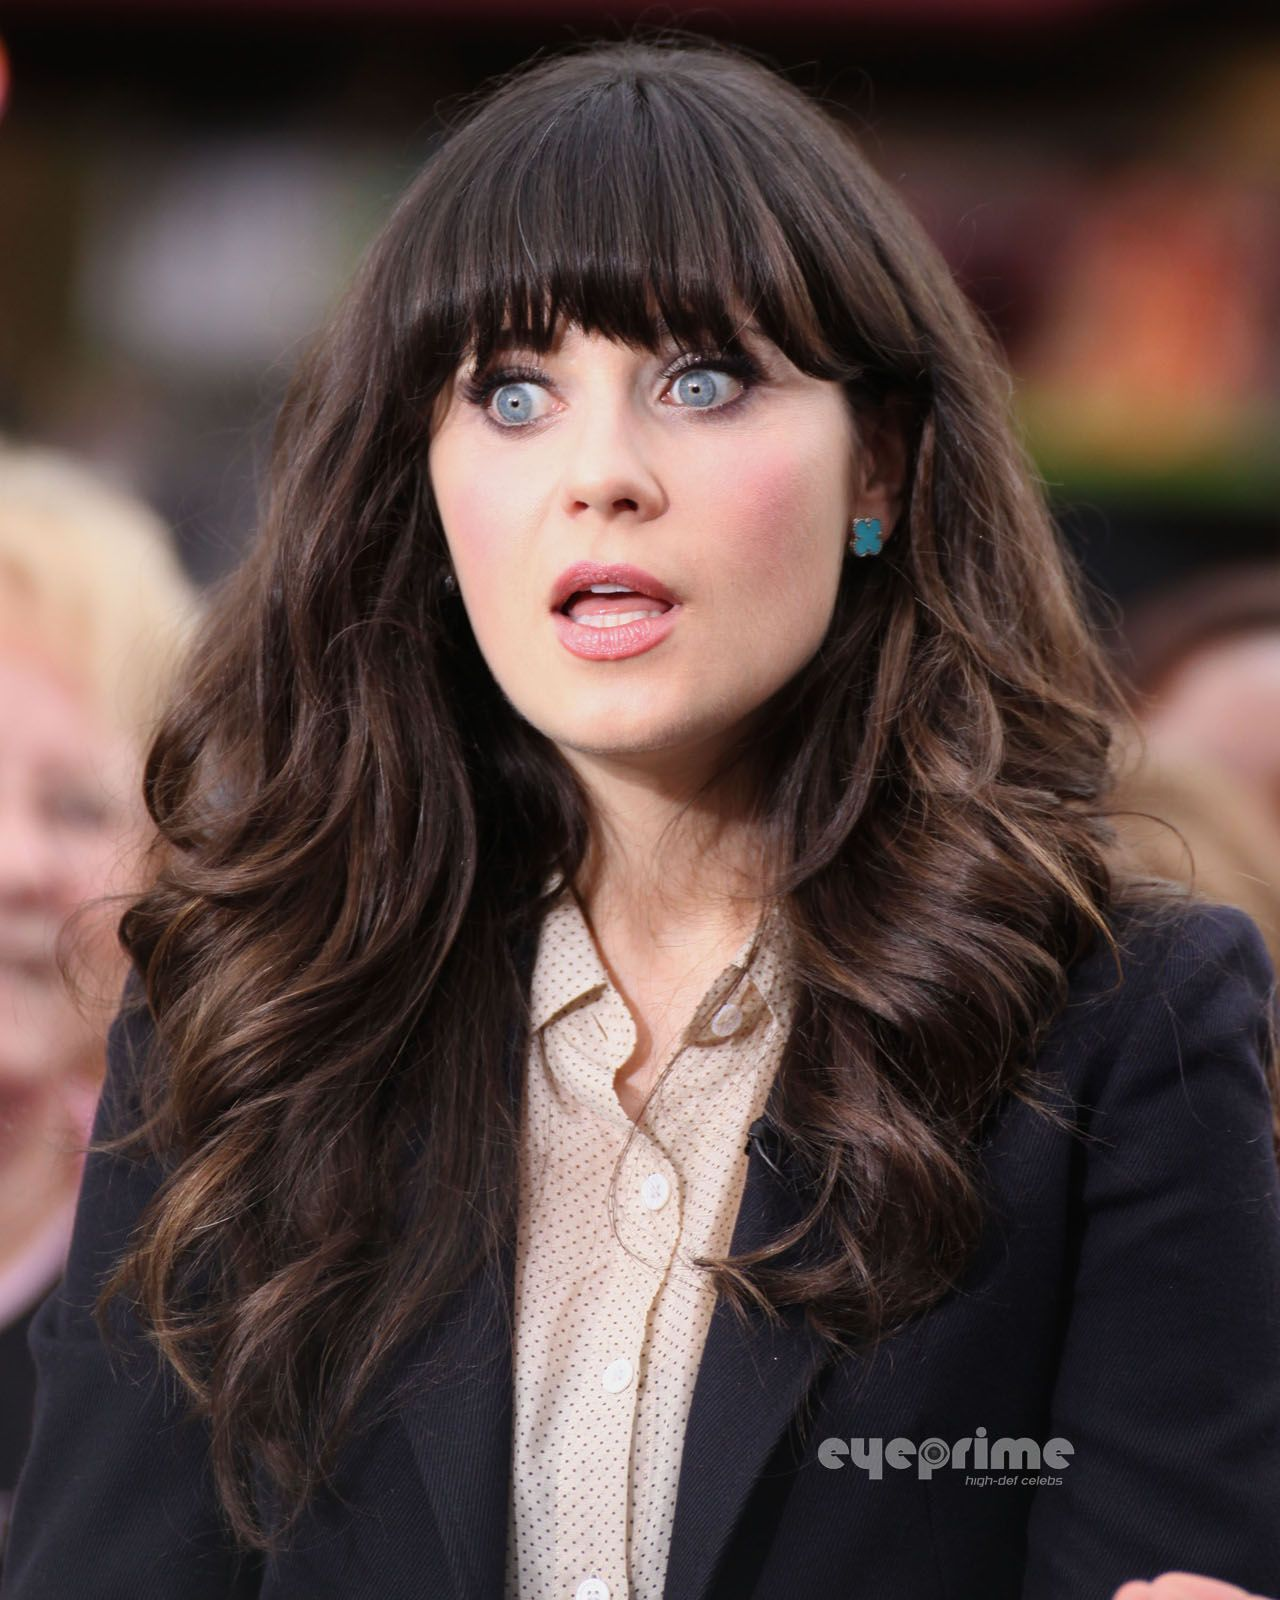 Zooey Deschanel Photo Zooey Deschanel Appears On The Extra Show In Hollywood Oct 4 Zooey Deschanel Hair Hair Hair Styles